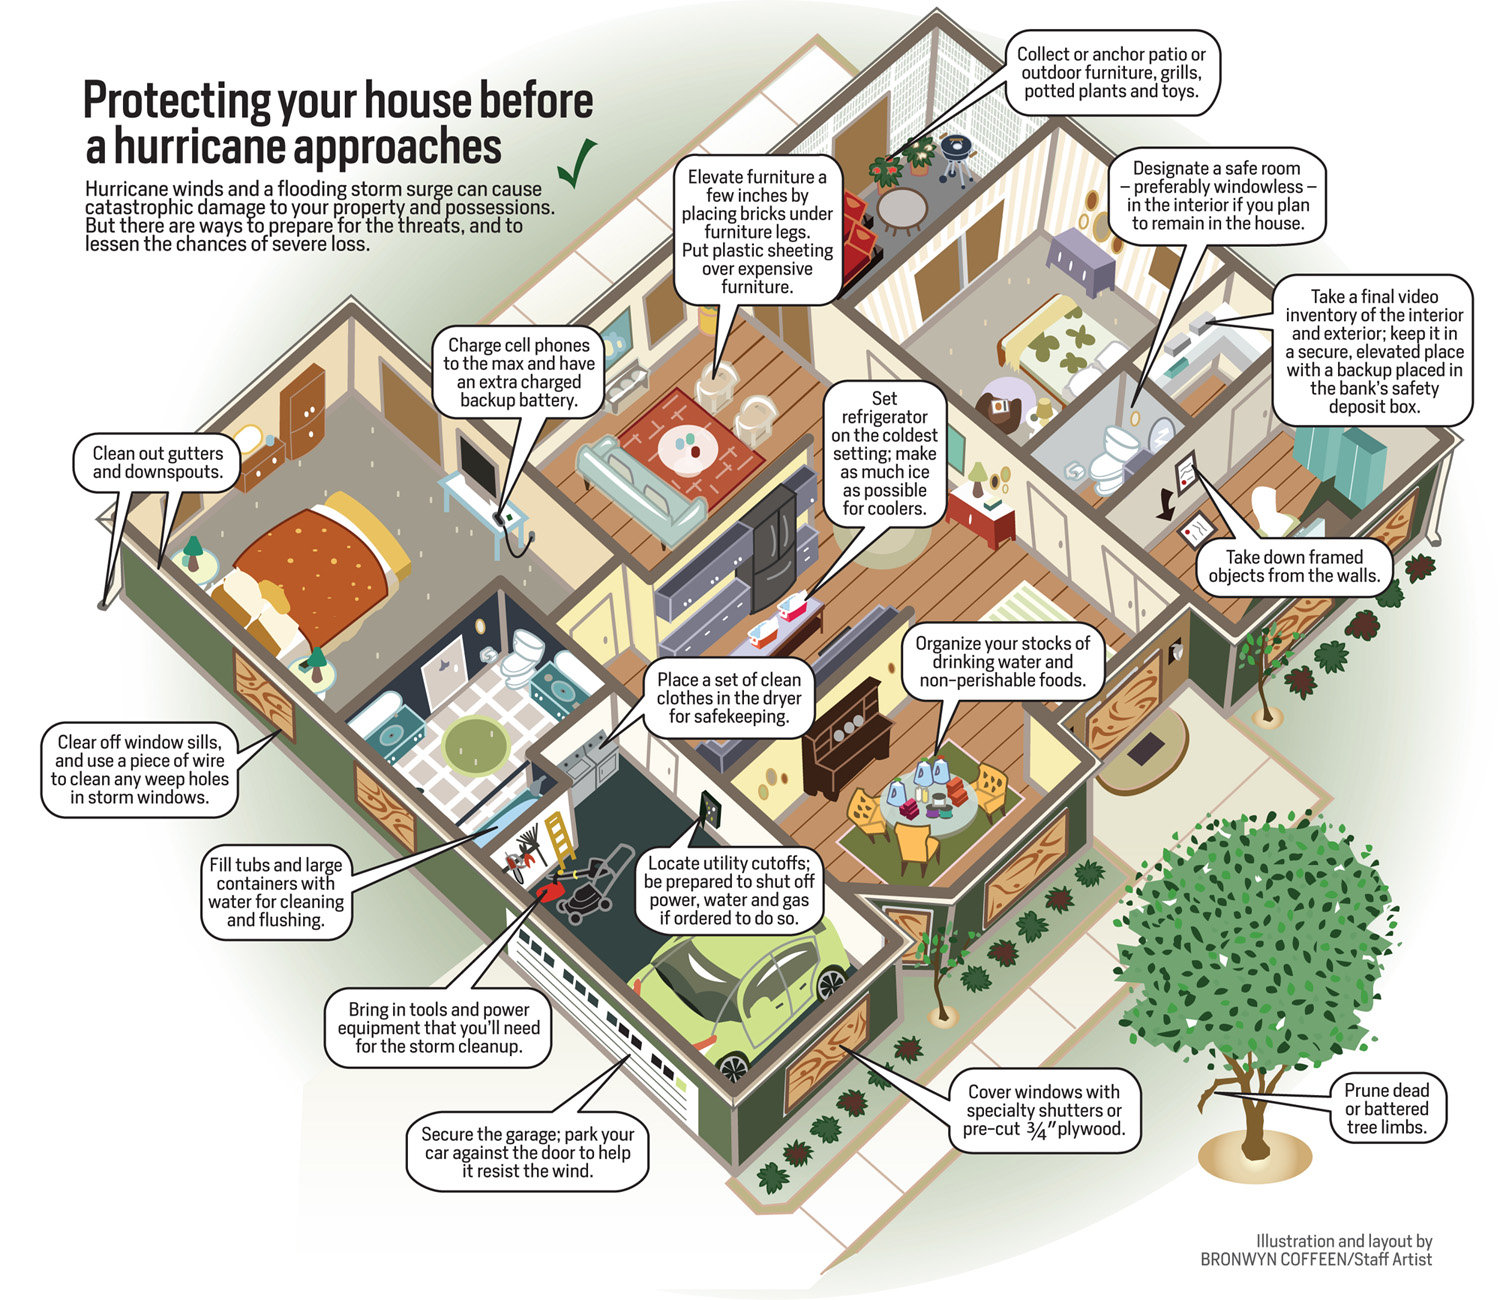 Protecting-Your-House-From-Hurricane-infographic